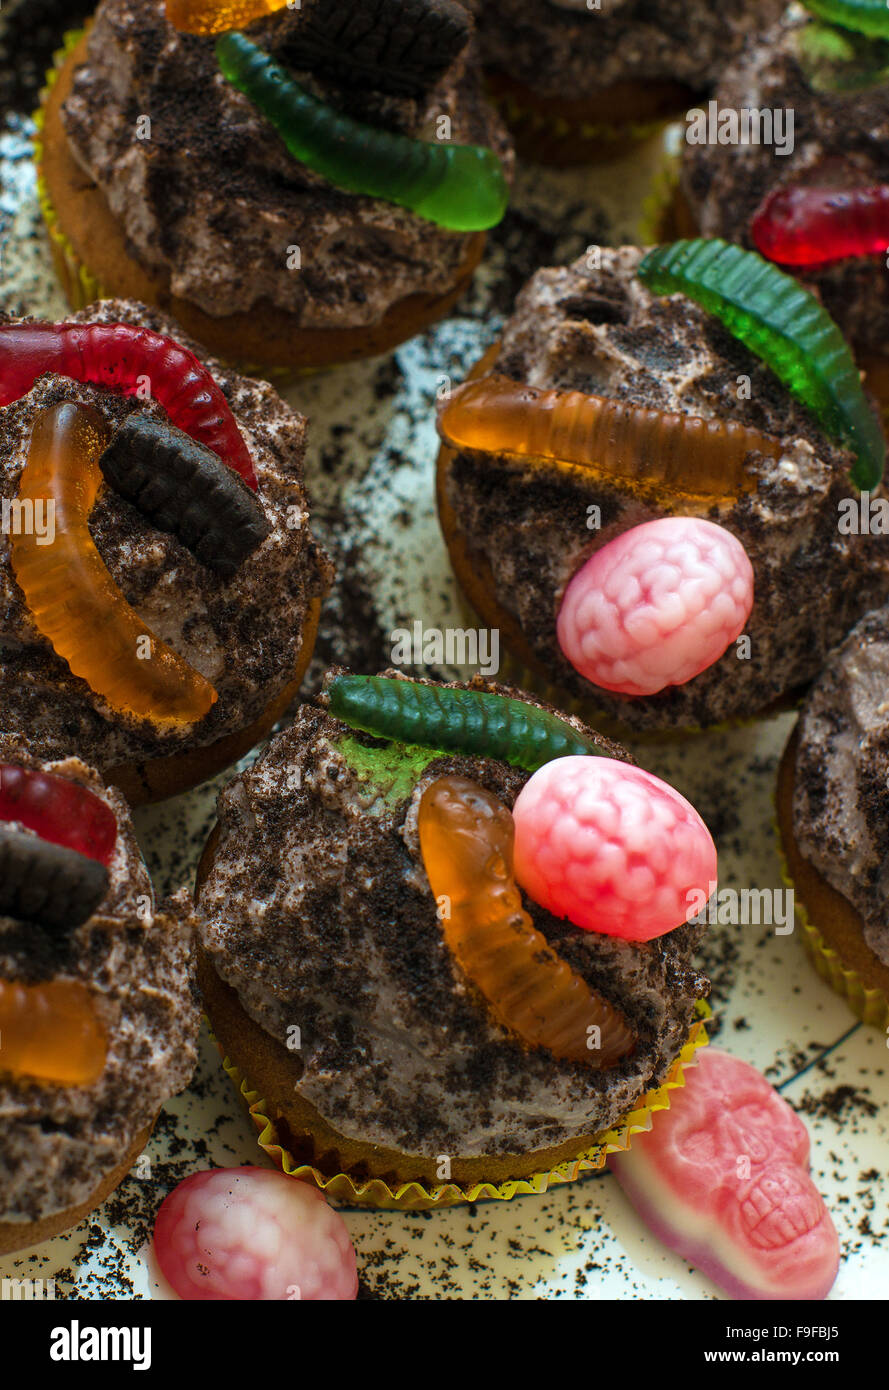 Ideas For Halloween. Cakes With Sweet Worms Stock Photo ...